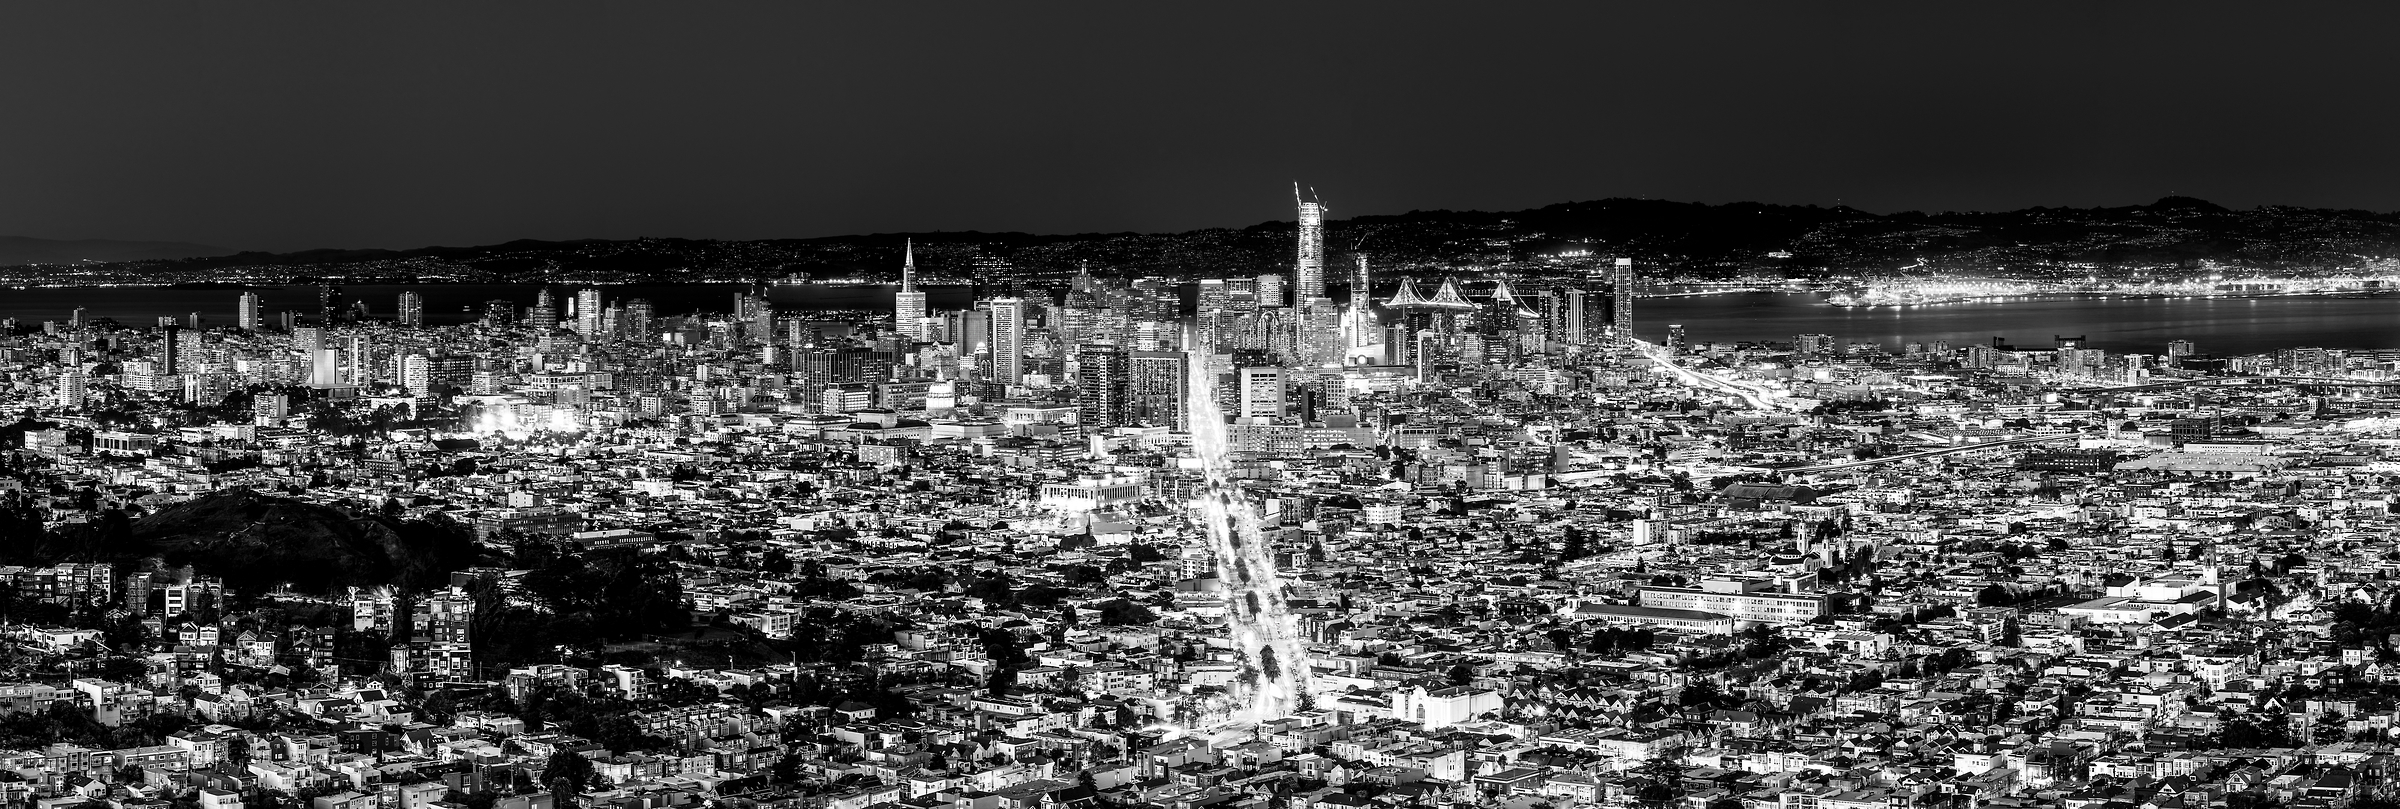 363 megapixels! A very high resolution, large-format VAST photo of the Downtown San Francisco city skyline at sunset dusk; fine art black and white cityscape photograph created by Justin Katz in California